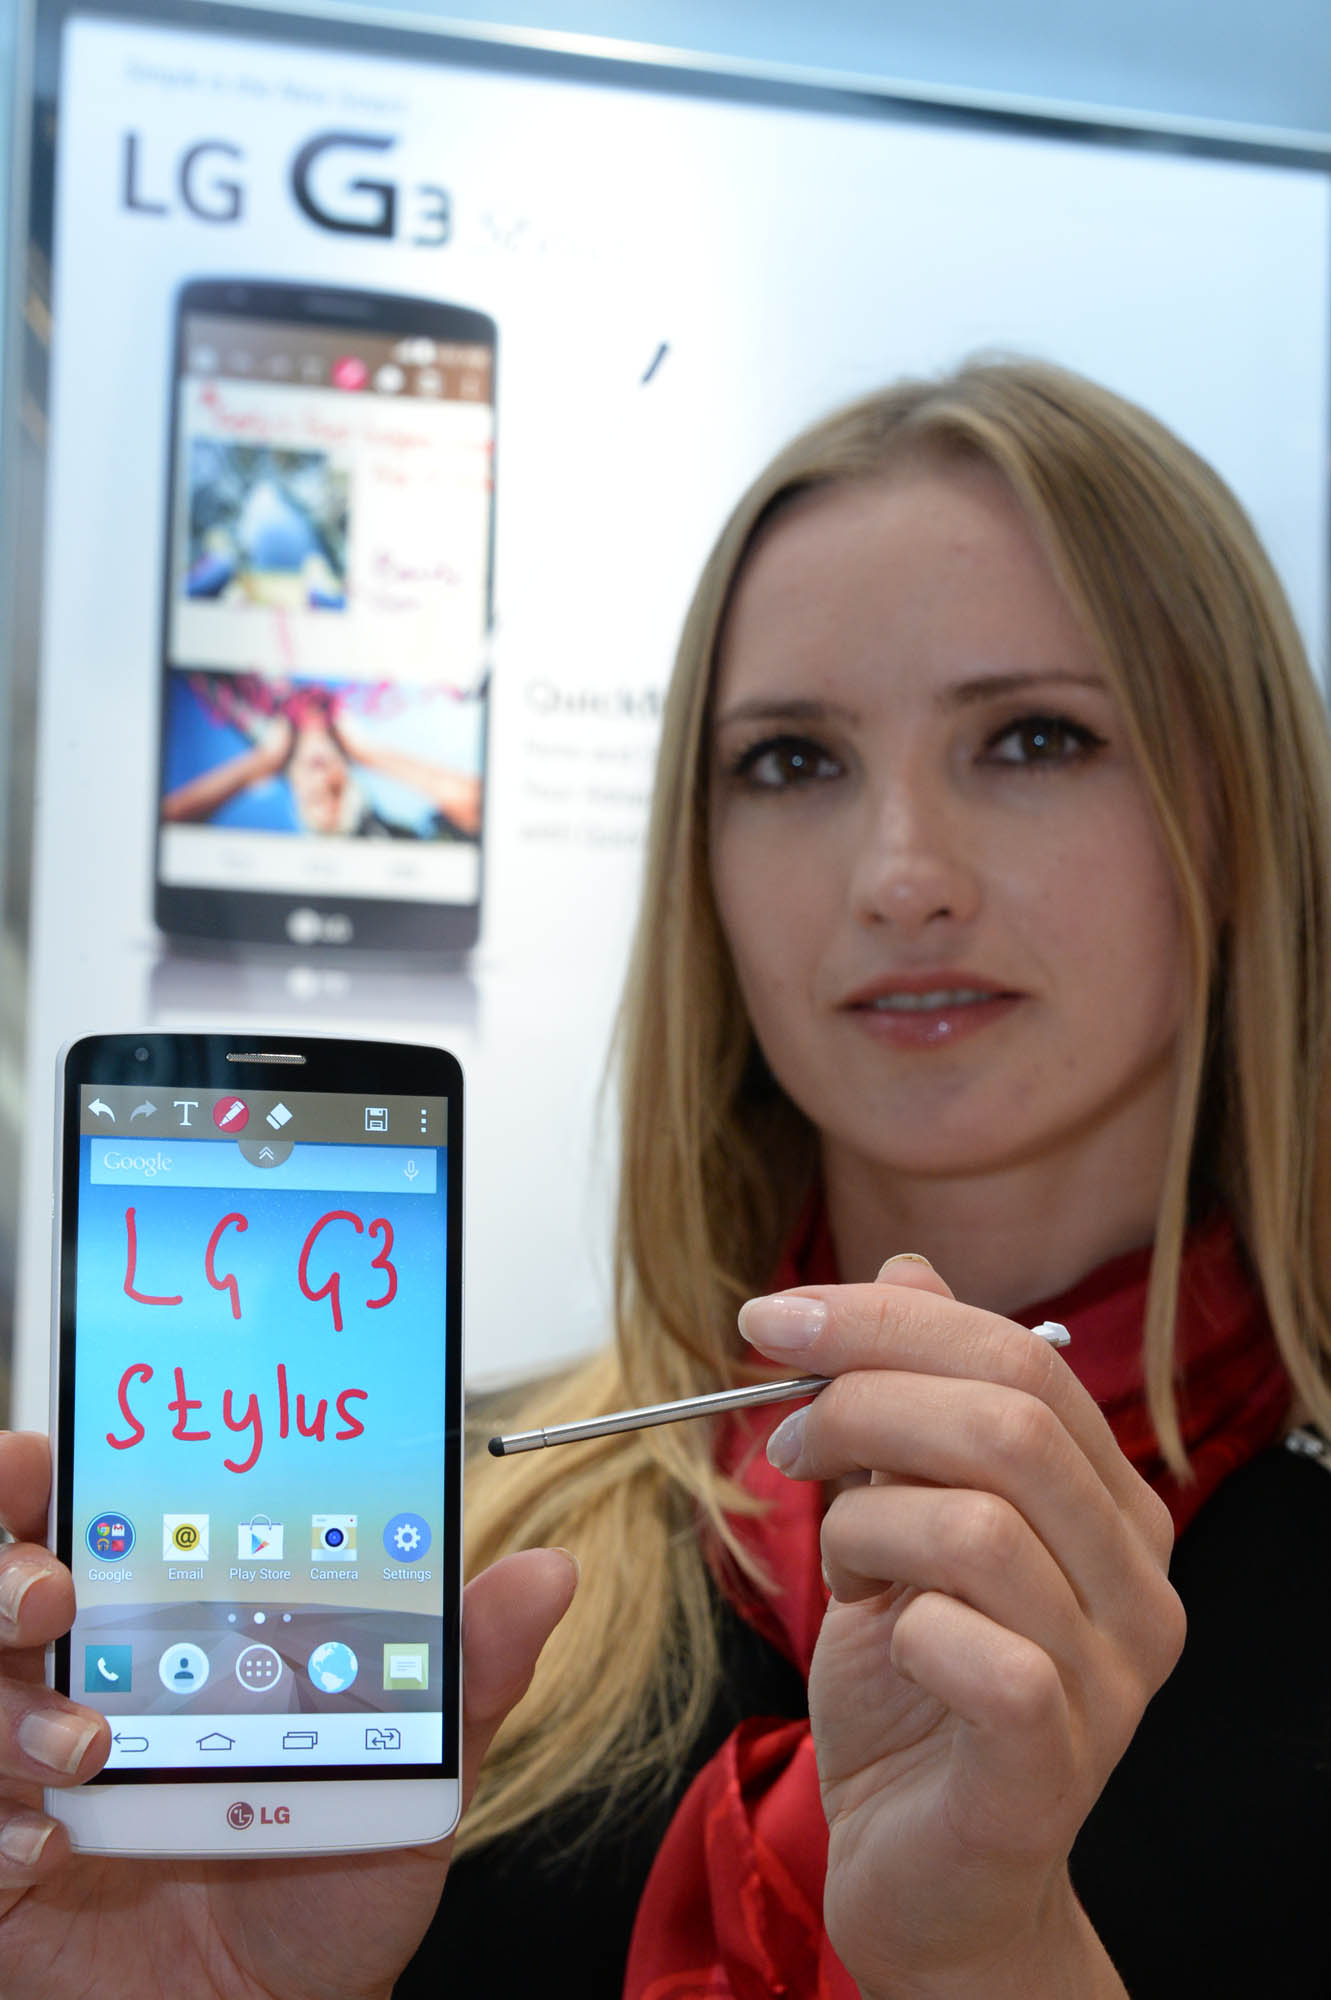 """A model poses with the LG G3 Stylus after writing """"LG G3 Stylus"""" using the phone's QuickMemo function."""